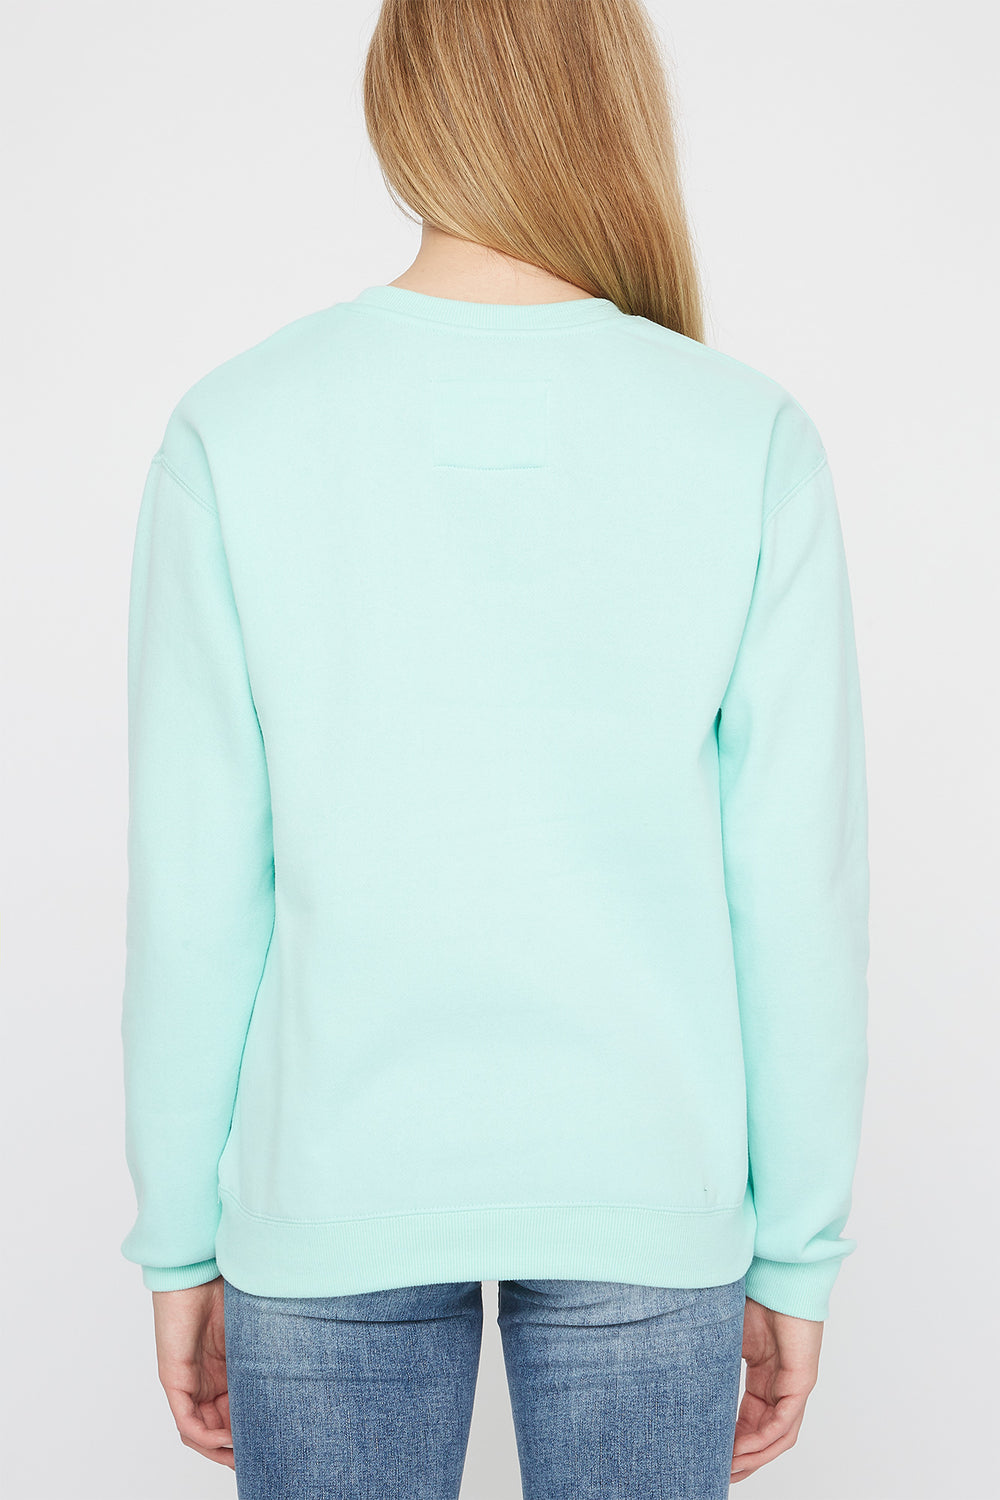 Zoo York Womens Embroidered Logo Pastel Sweater Sage